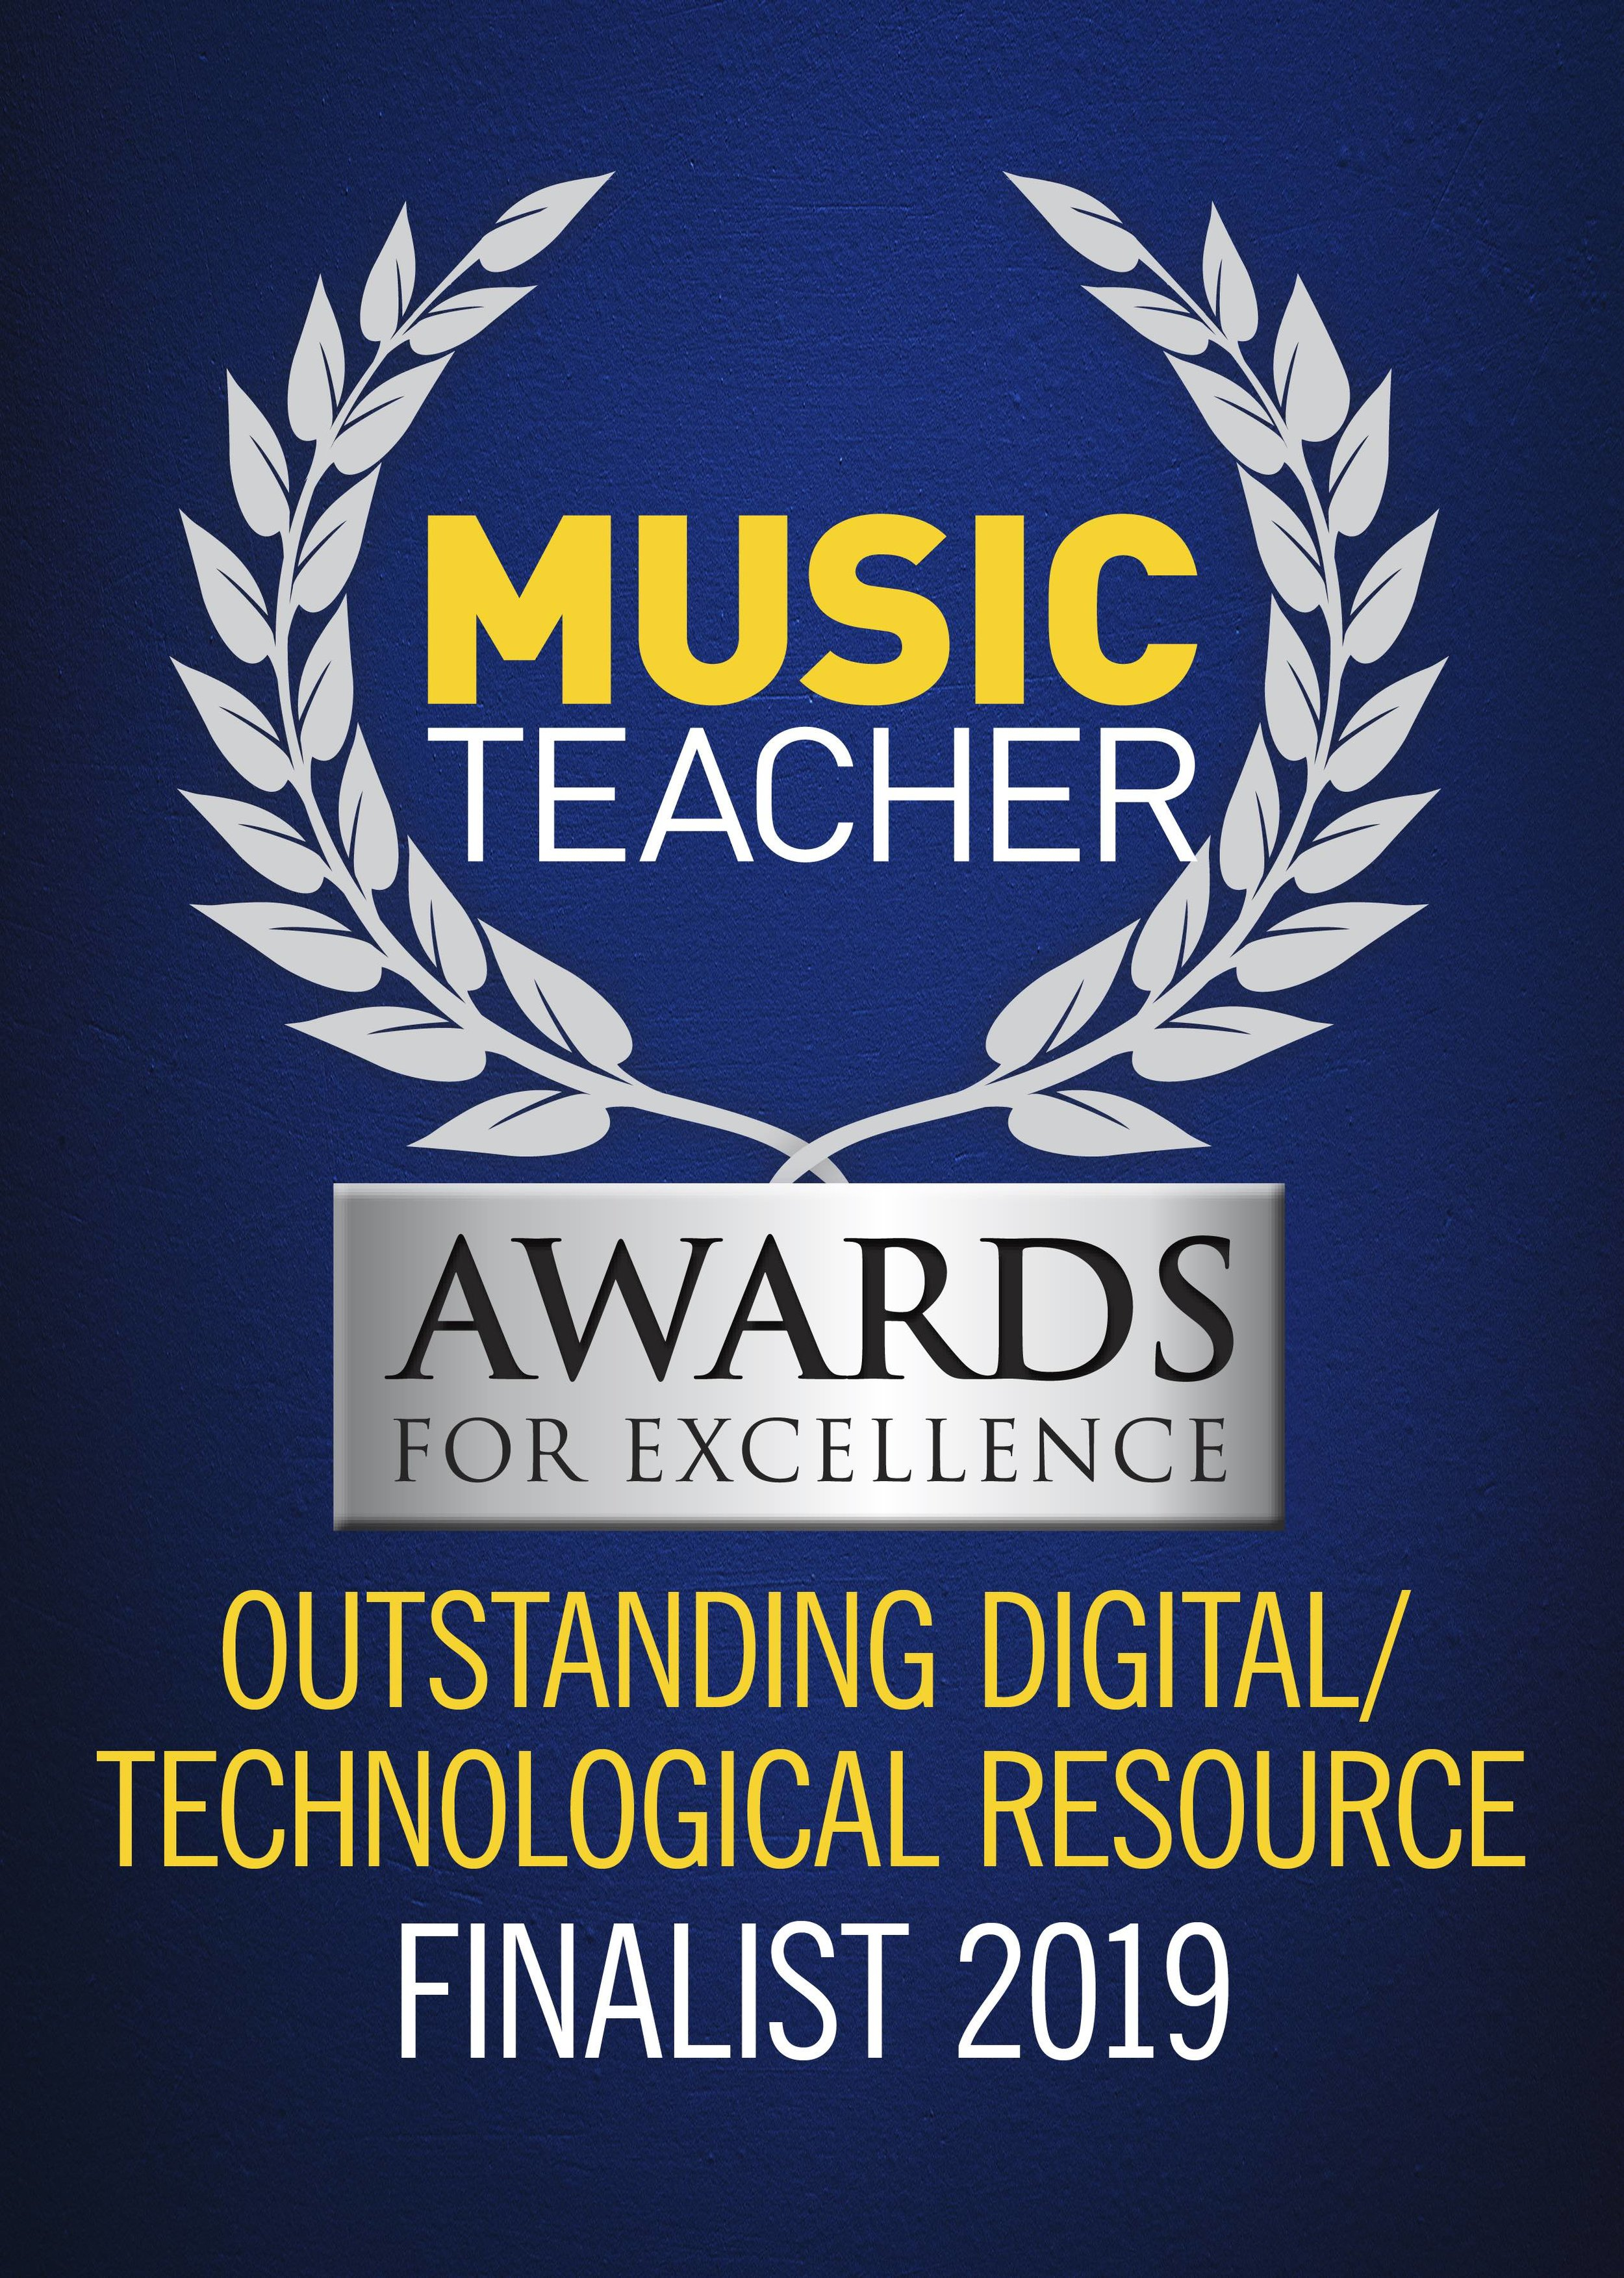 Our World-Music Online Courses & Workshops have been selected as Finalists in the 2019 Music Teacher Awards! - We will find out in March 2019 if we have won the award!